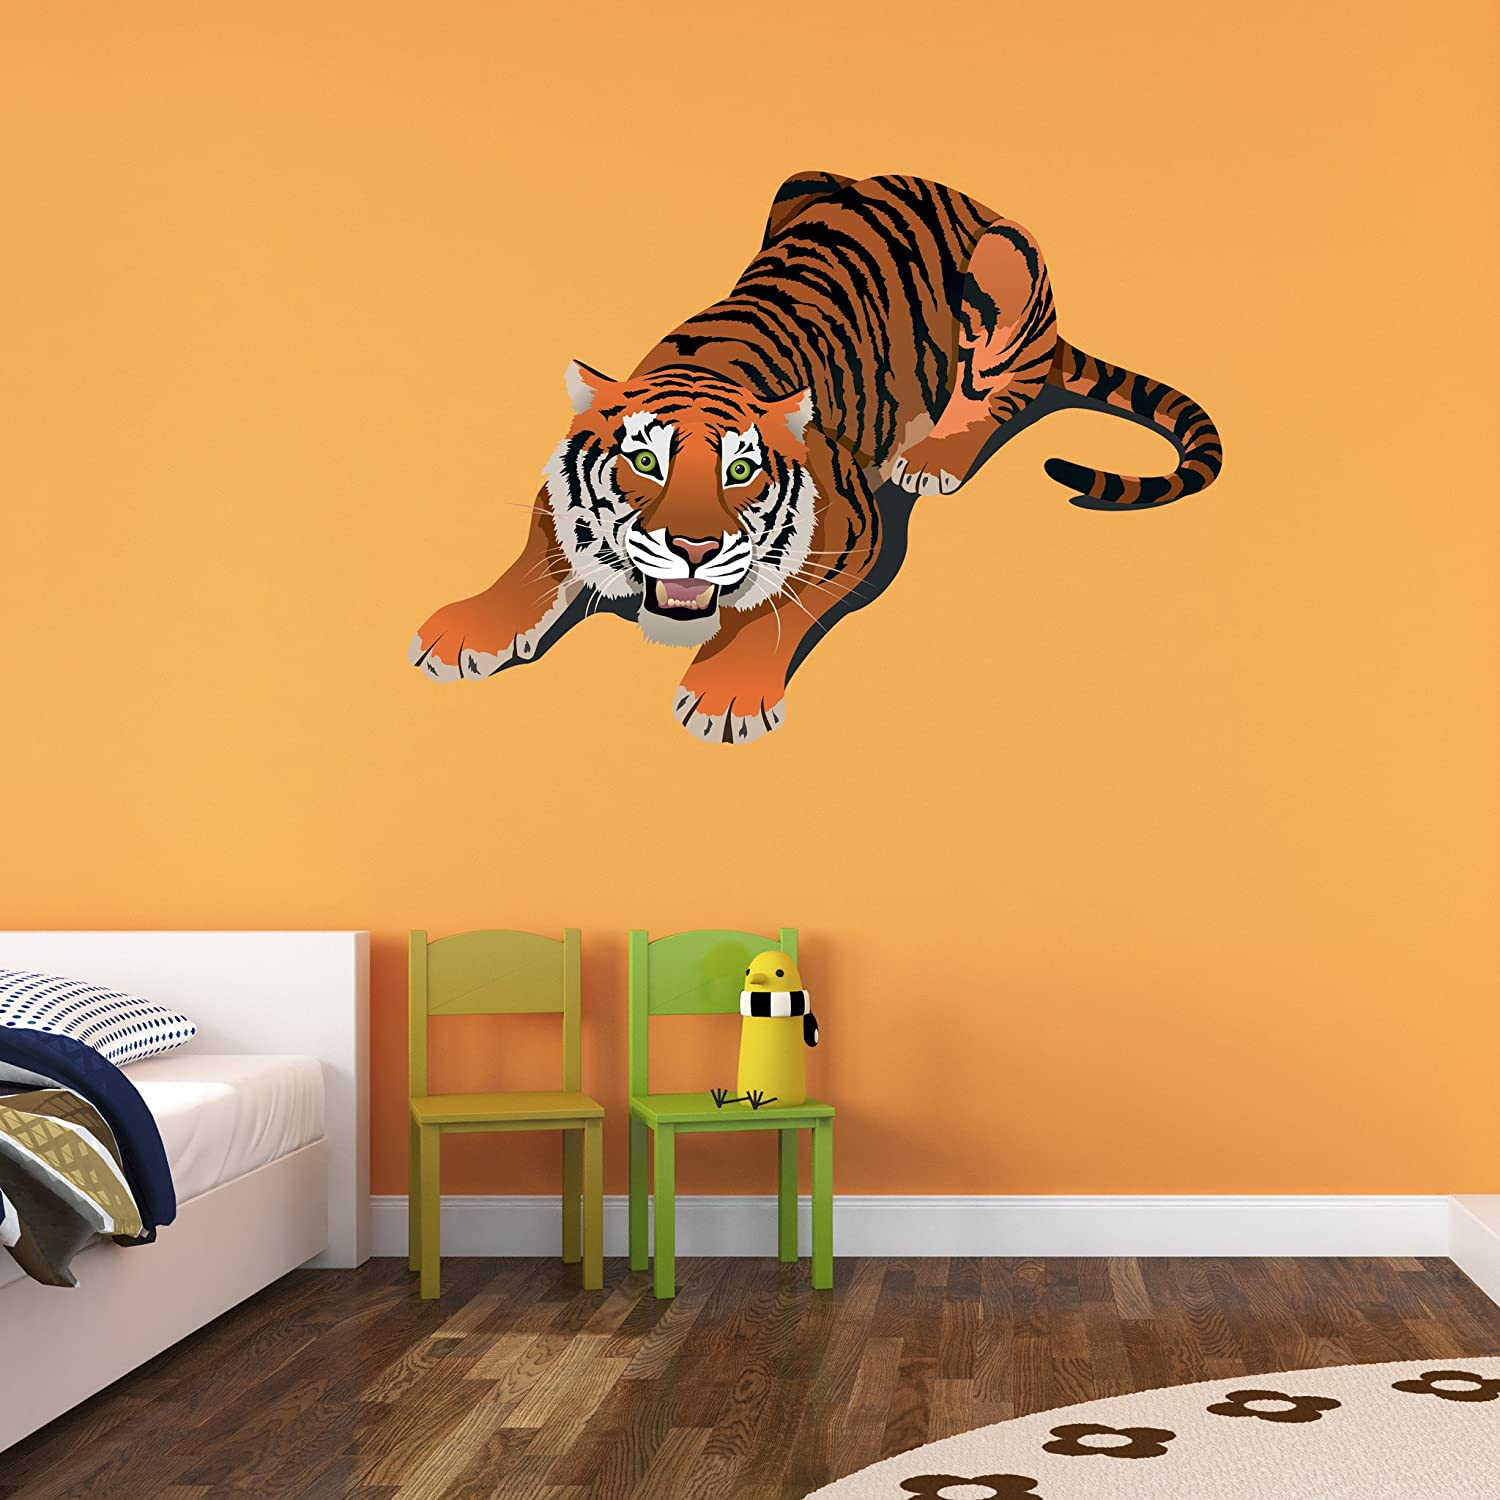 Amazon.com: Crouching Tiger Wall Decal by Style & Apply - Wall ...